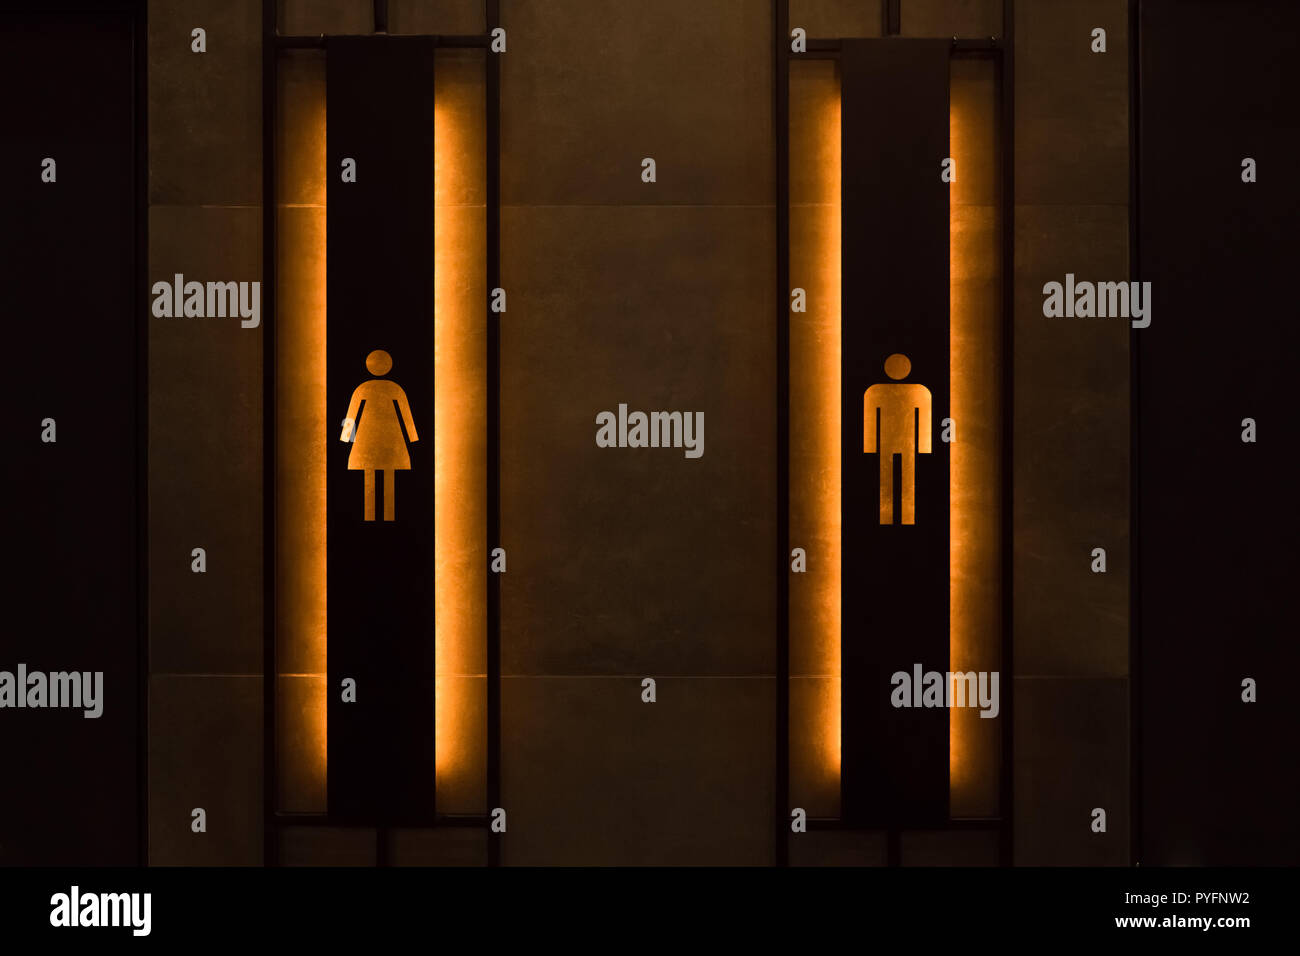 Restroom concept. Restroom sign on a toilet door. Female and male restroom sign. Restroom signs in public place. Important signs and symbols concept. Simple sign of WC. - Stock Image